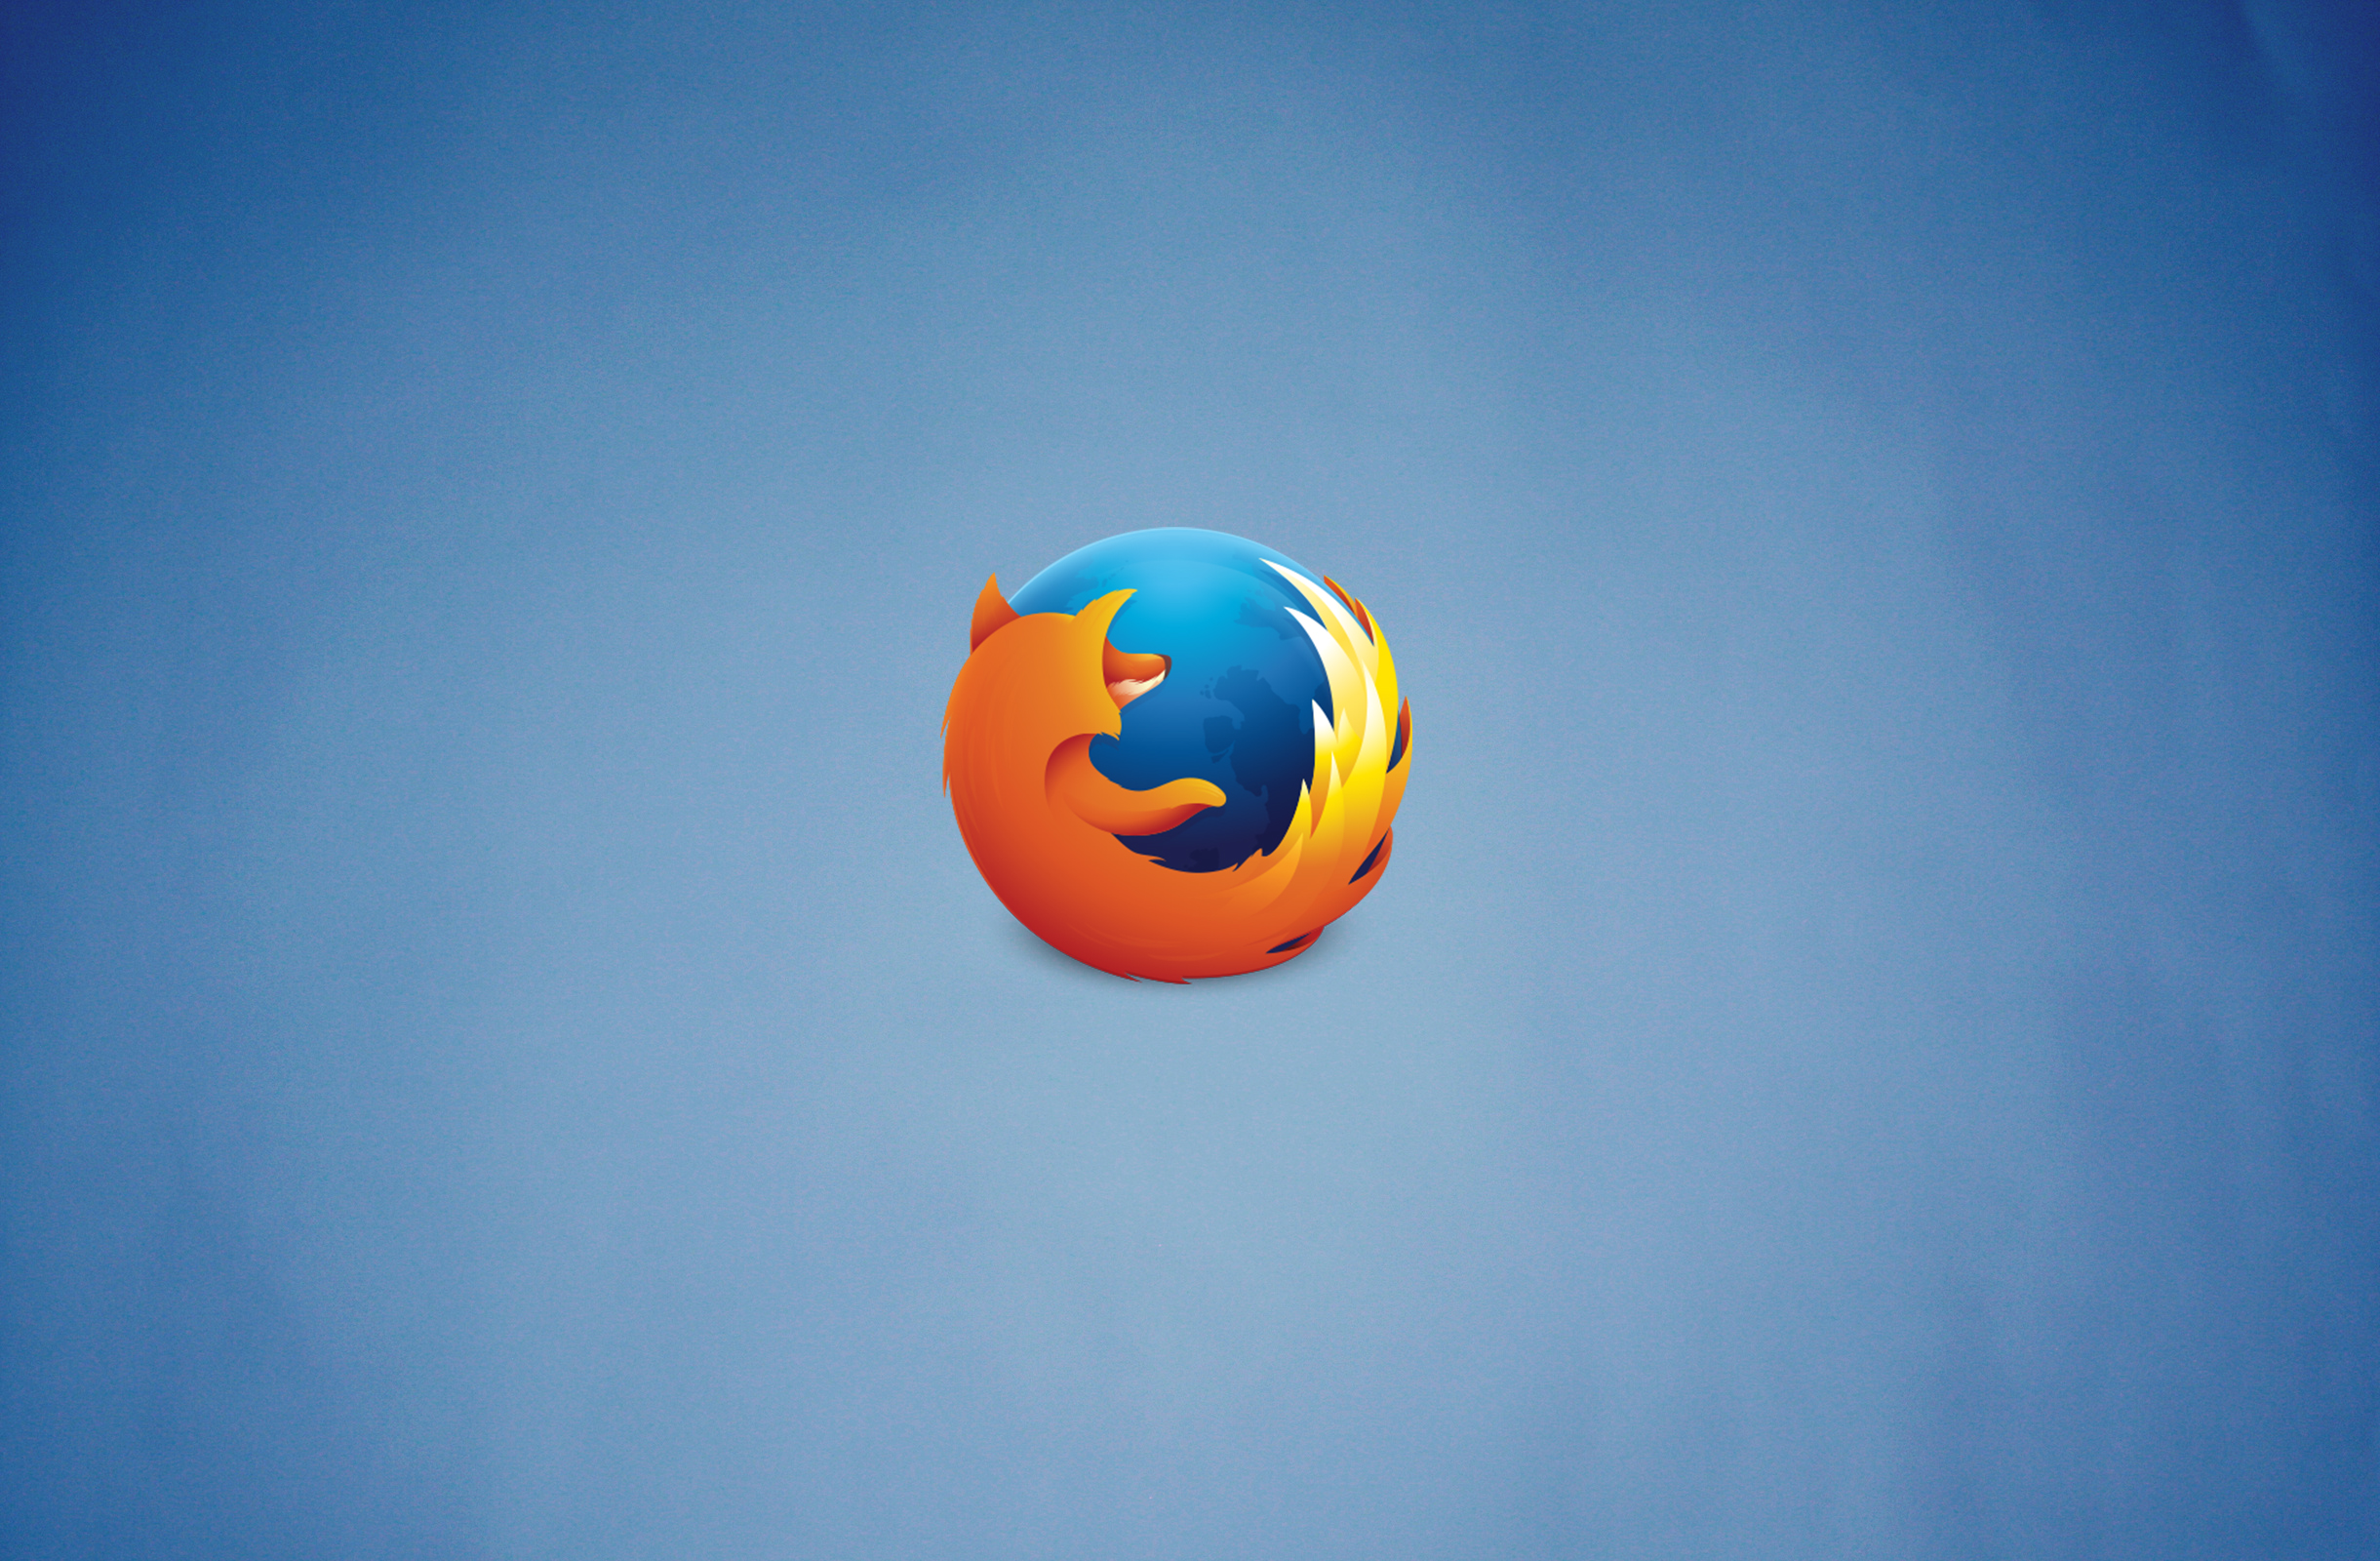 Firefox Serenity Full HD Wallpaper And Background Image